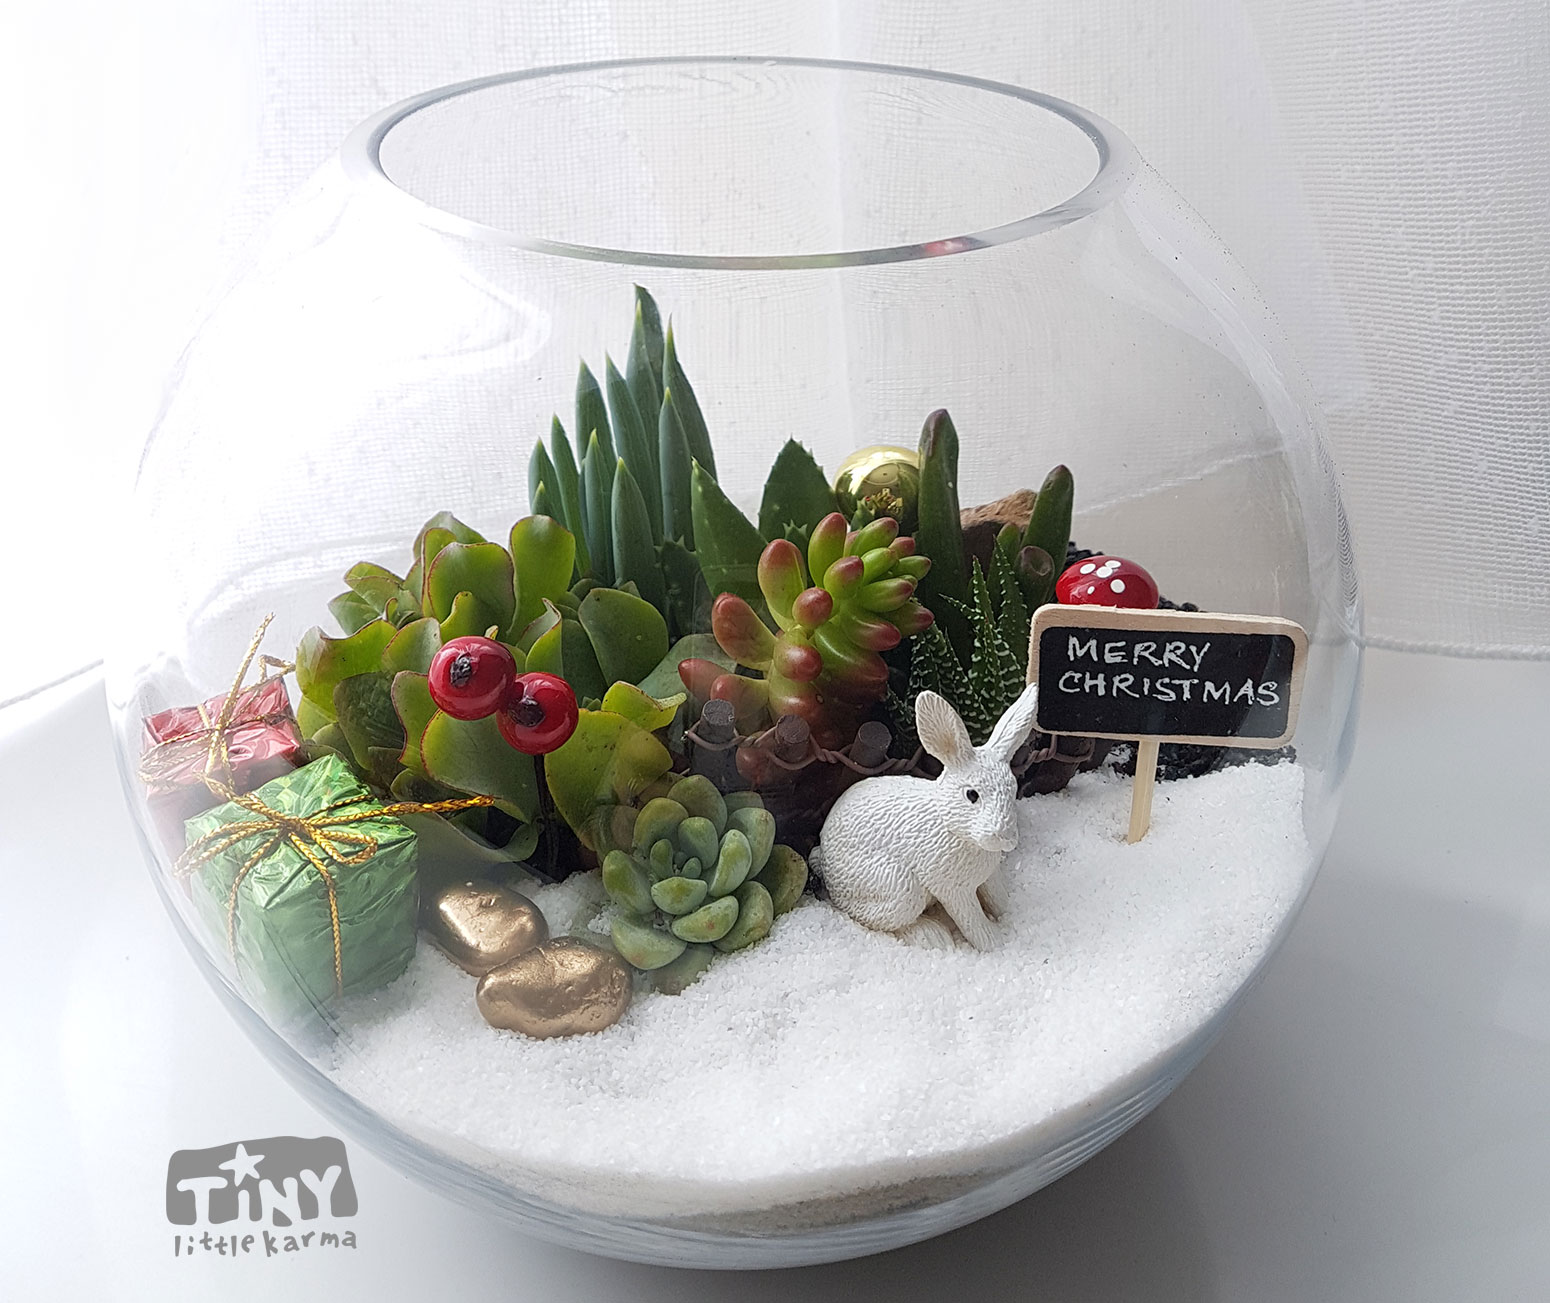 Fish Bowl Succulent Terrarium Tiny Little Karma